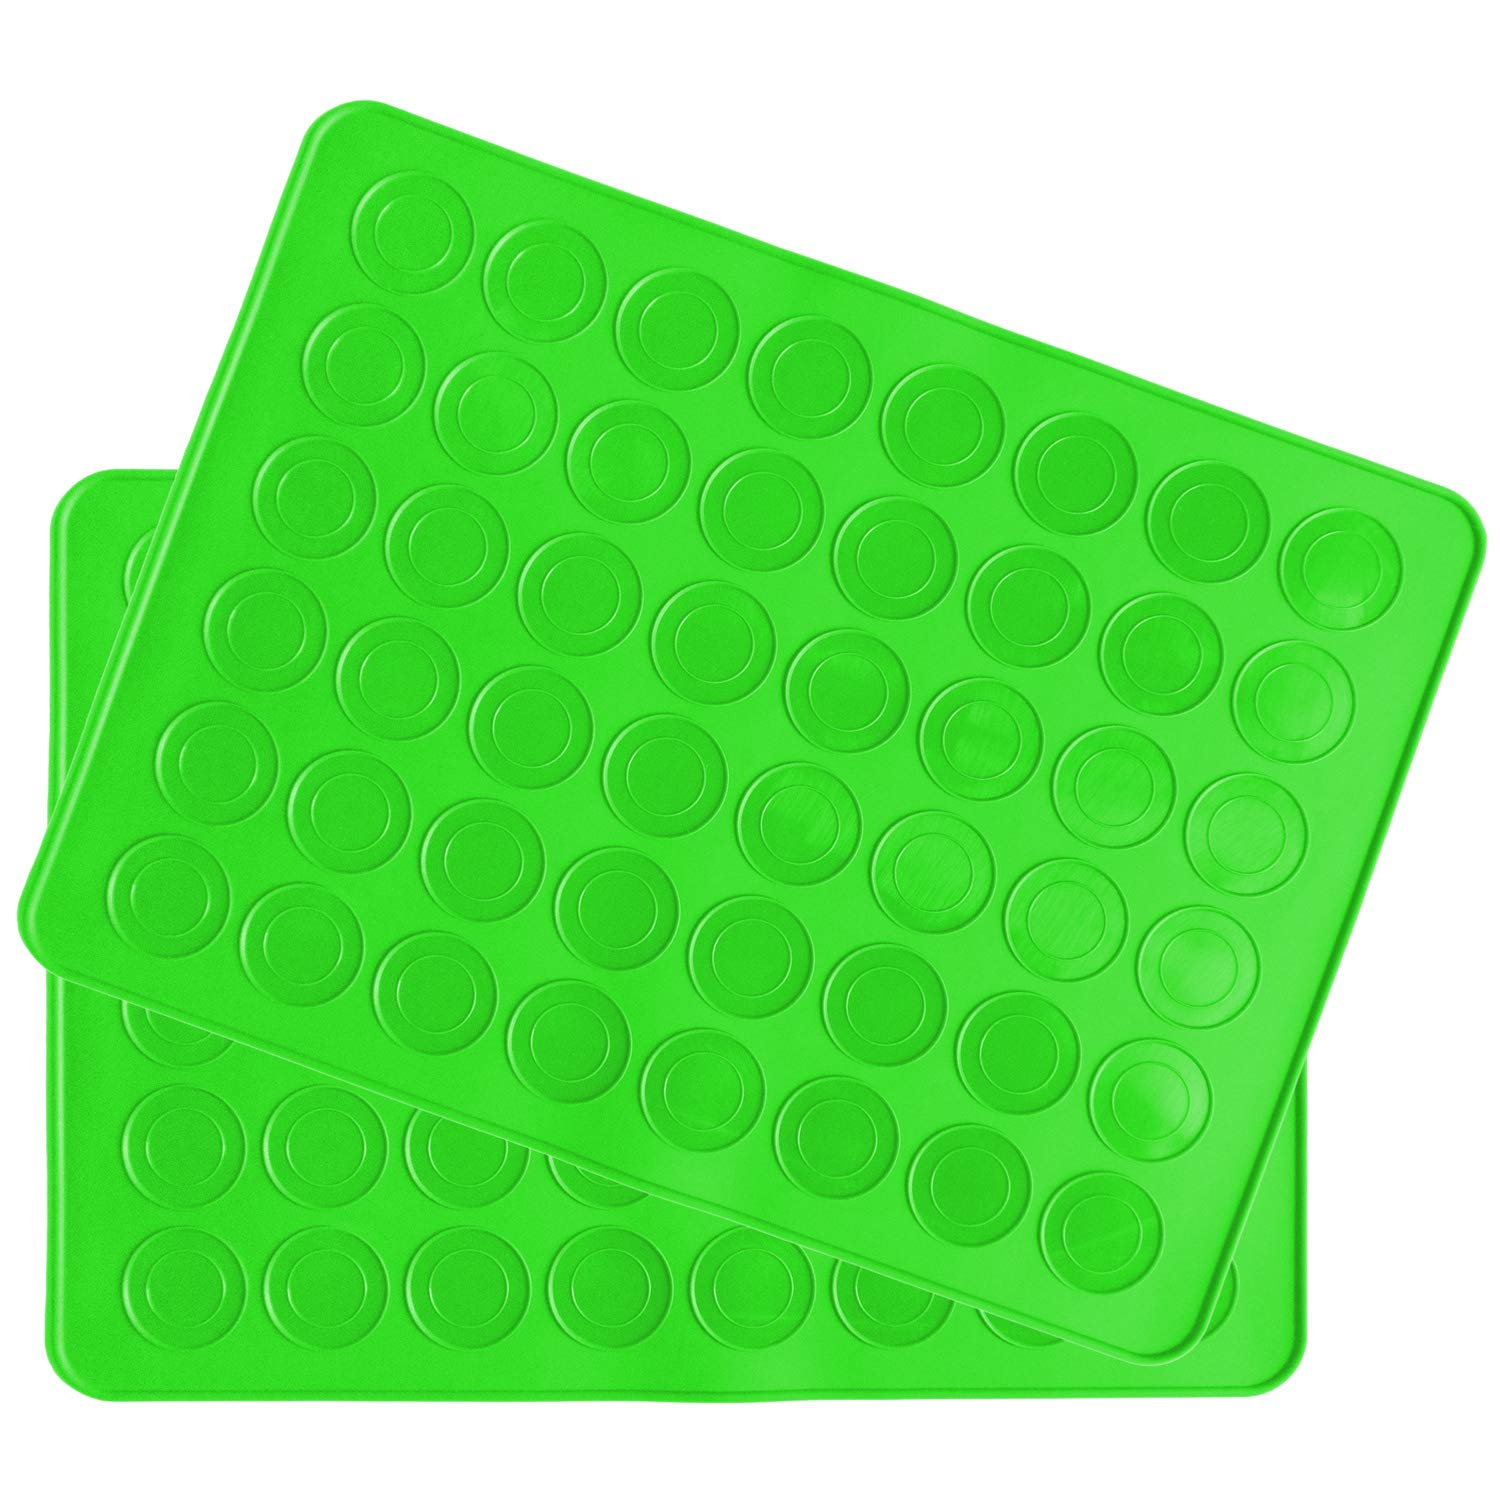 Belmalia 2 macaron silicone baking mats for 48 perfect macarons, 96 moulds, non-stick coated, 38x28cm Green BM-1002grx2